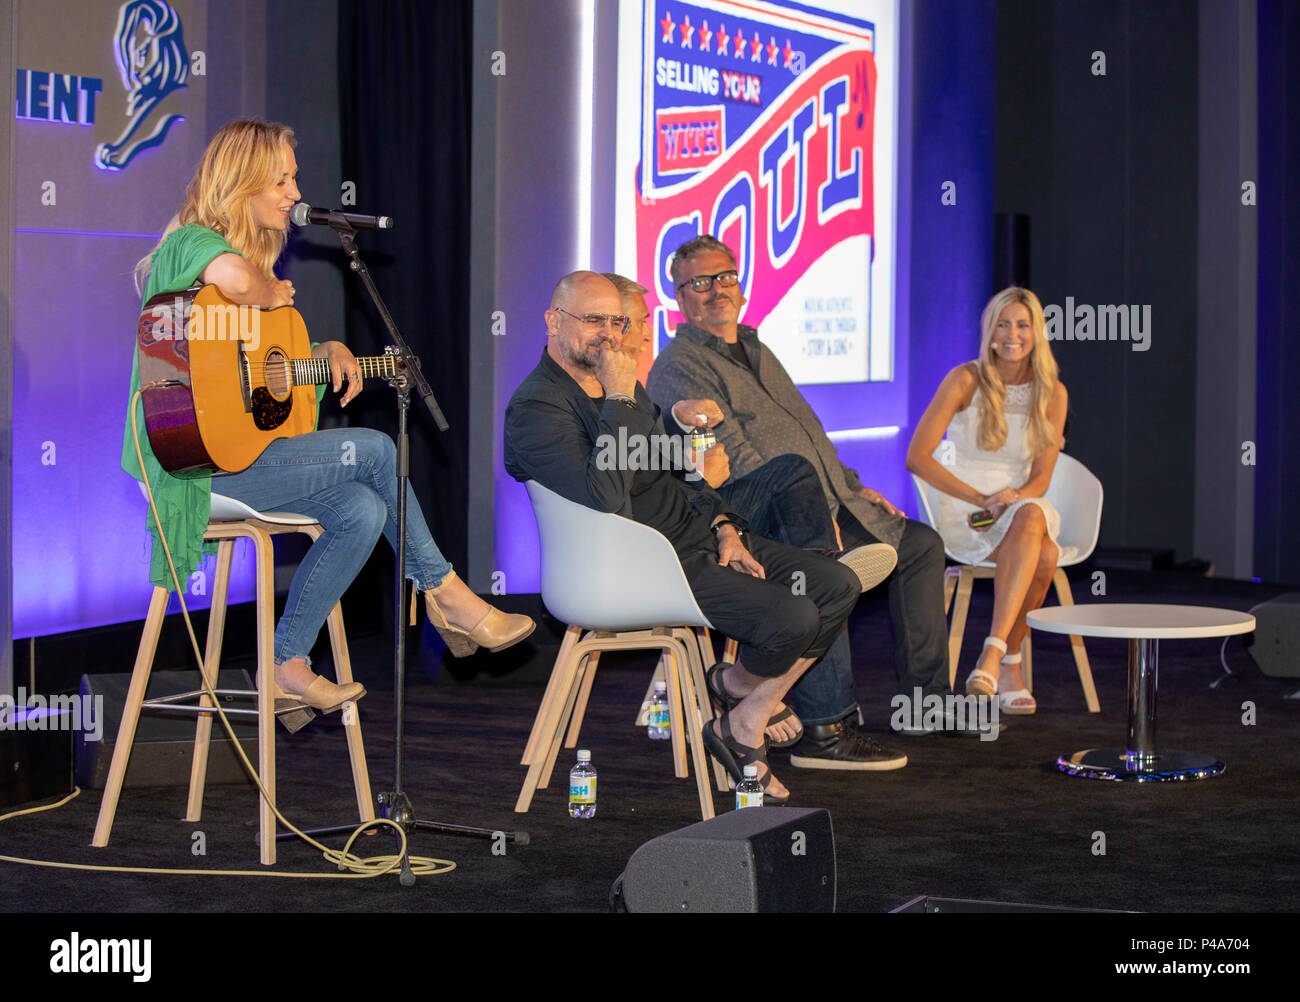 Cannes, France, 21 June 2018, Jessi Alexander, Anthony 'Chusy' Haney-Jardine, Butch Spyridon,John Godsey and Allison Pierce attend - Selling with Soul: Making Authentic Connections Through Story and Song at Cannes Lions Festival - International Festival of Creativity © ifnm / Alamy Live News - Stock Image